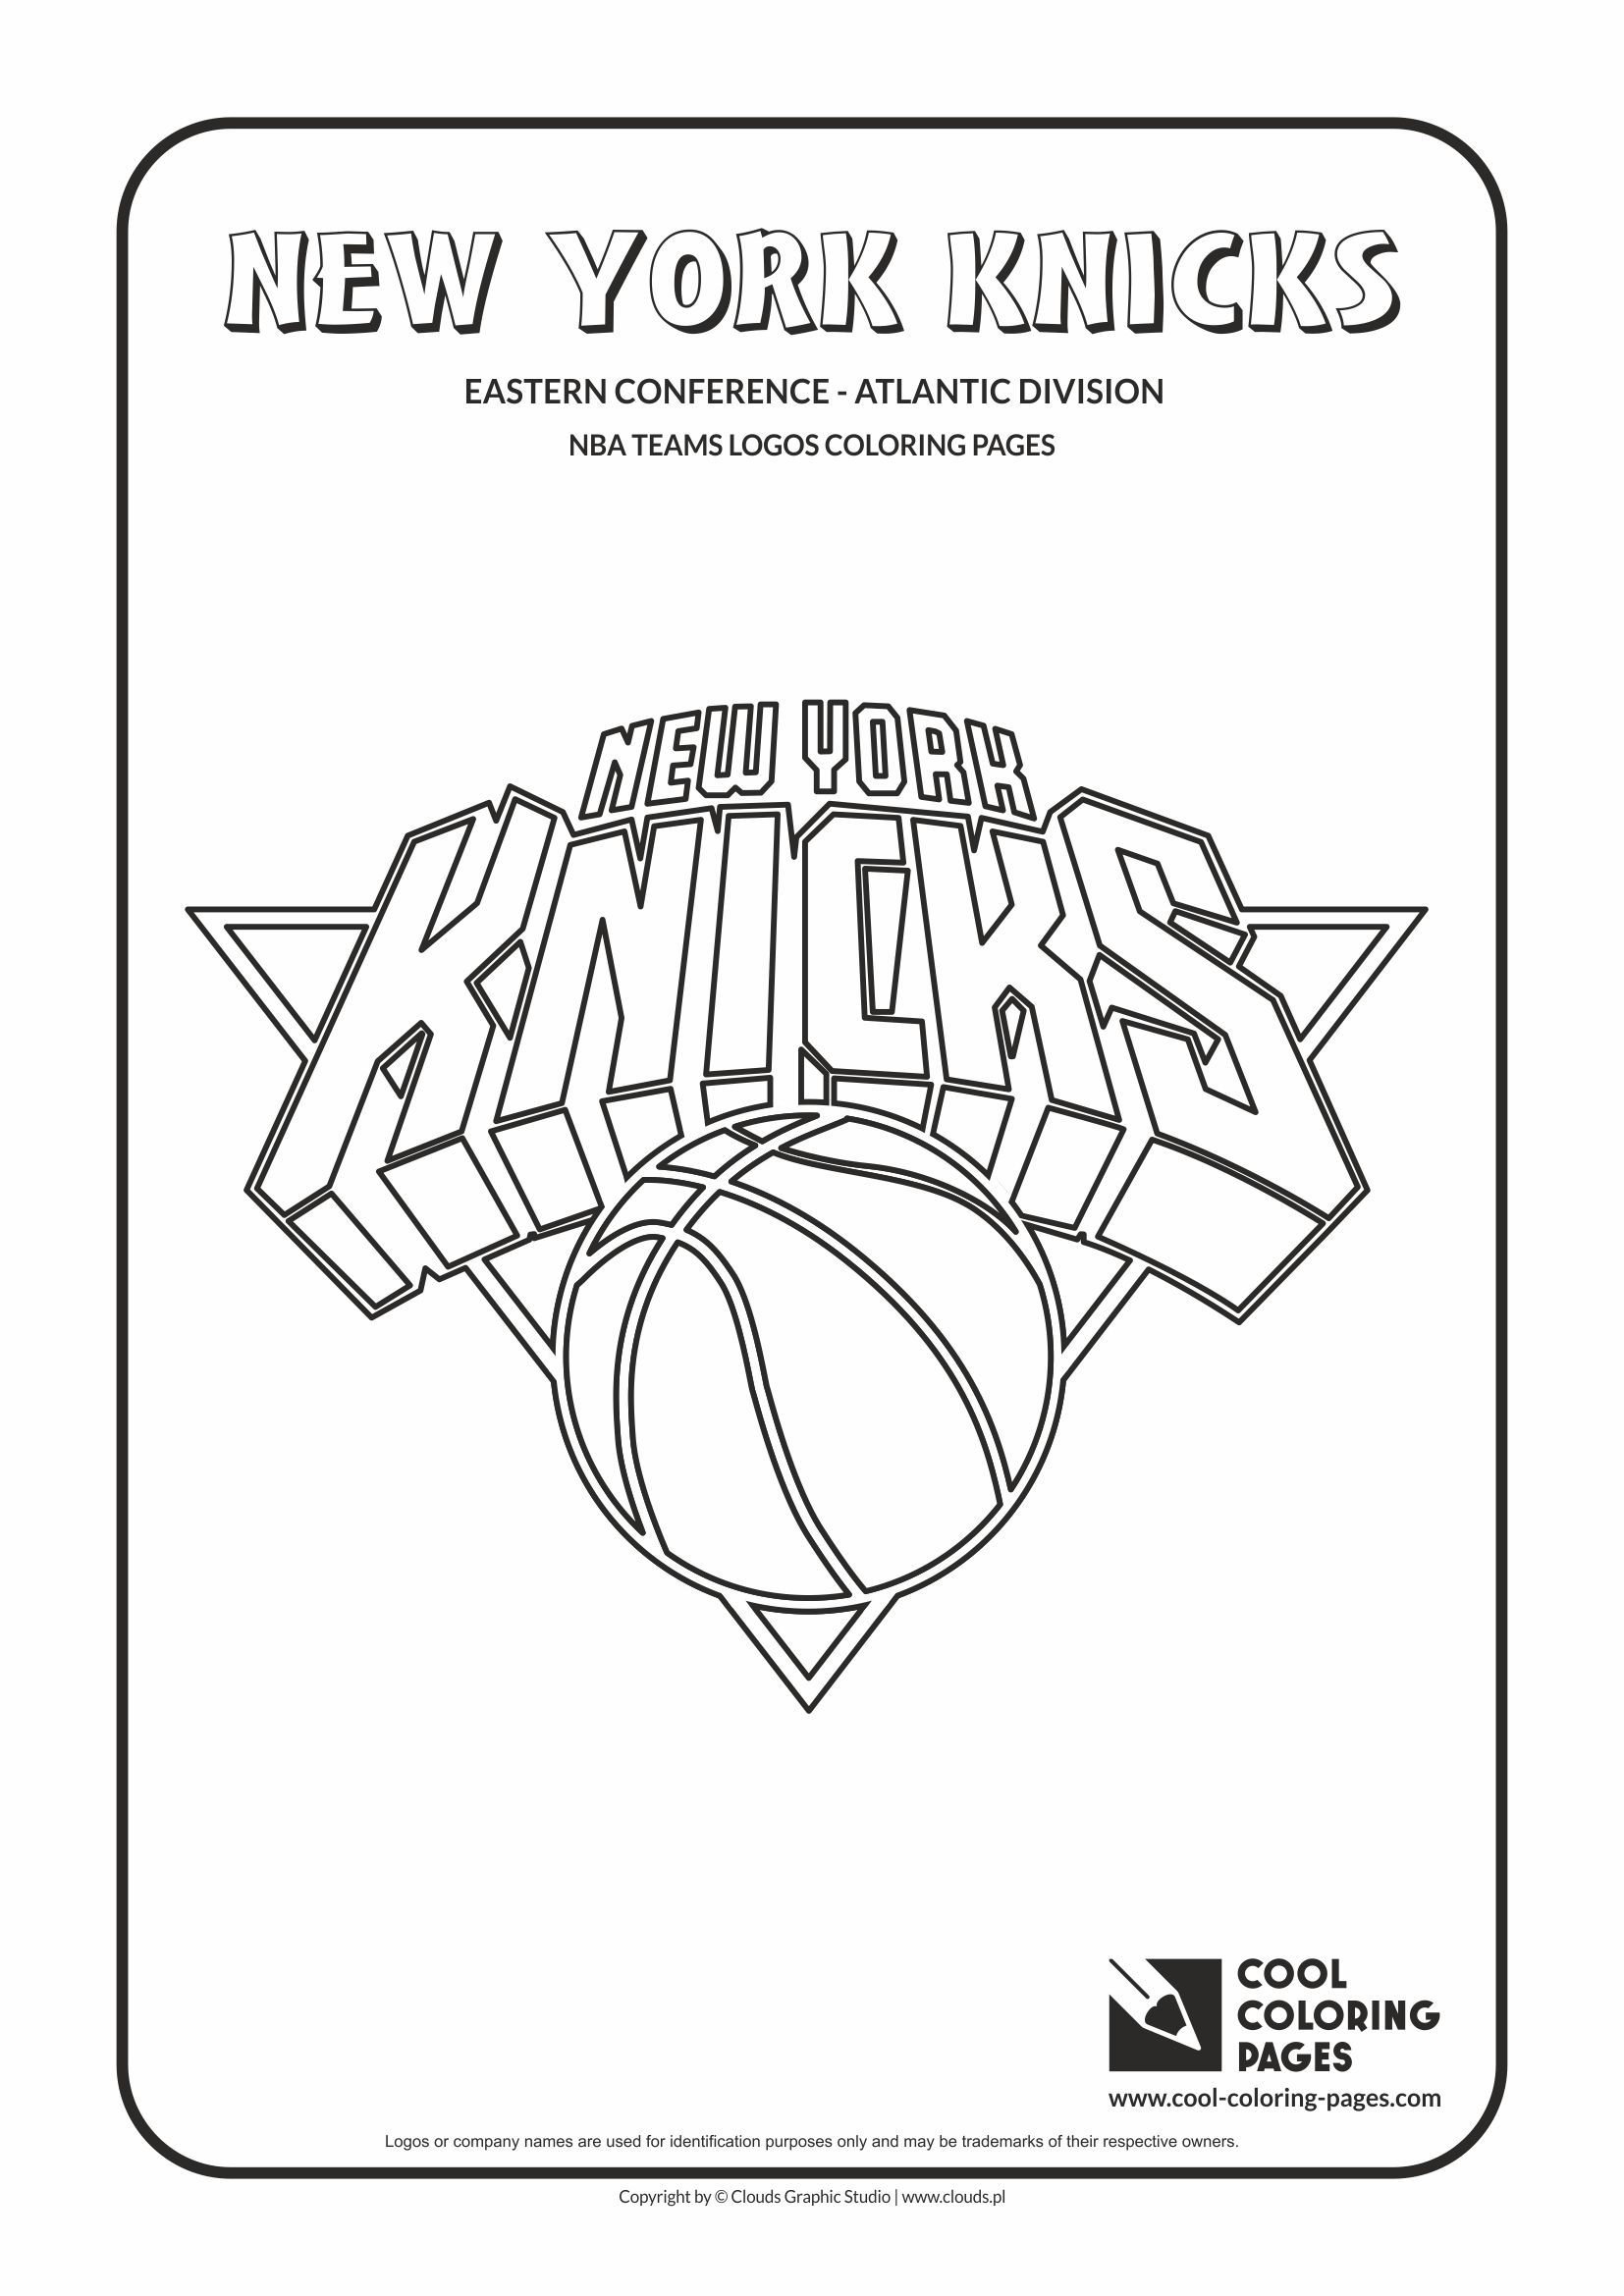 New York Knicks Nba Basketball Teams Logos Coloring Pages Cool